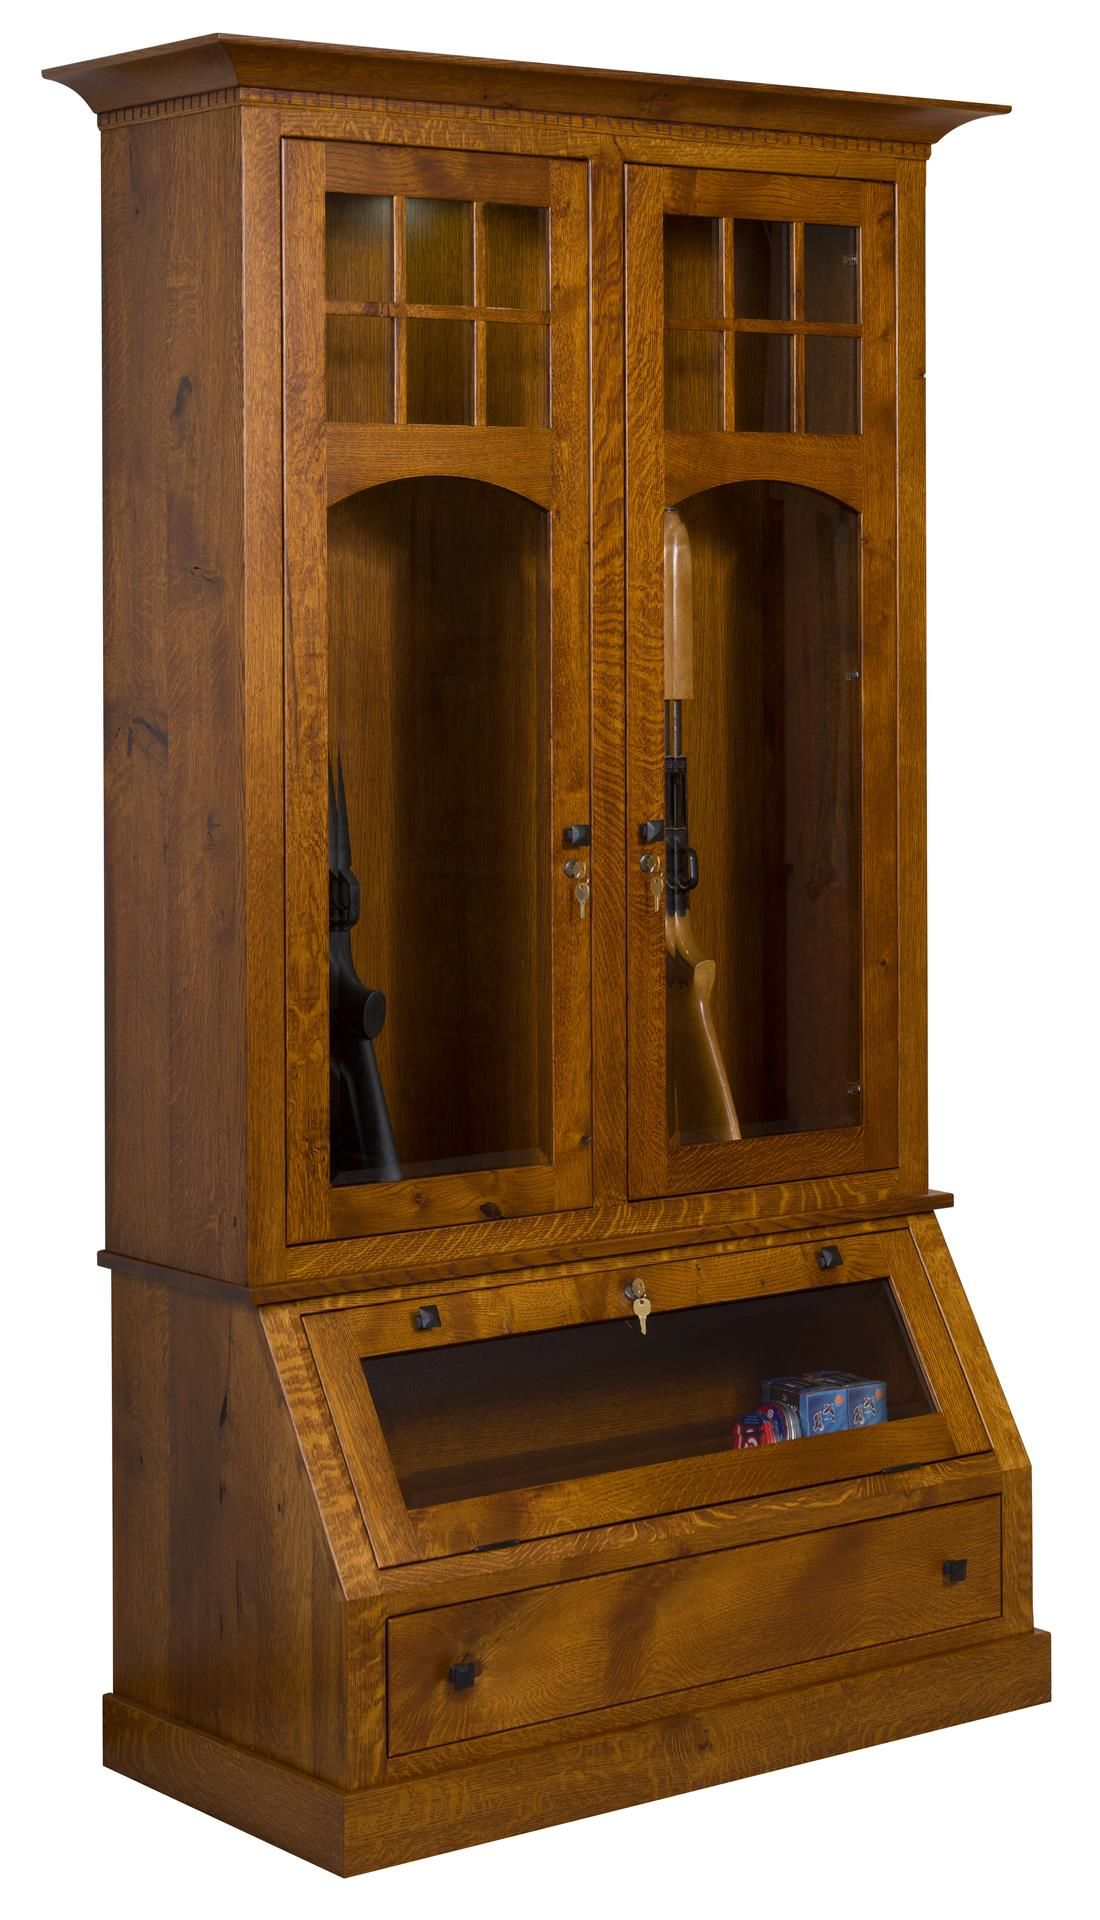 Ordinaire American Tribecca Gun Cabinet Safety, Security And Style Come With This  Solid Wood Gun Cabinet.